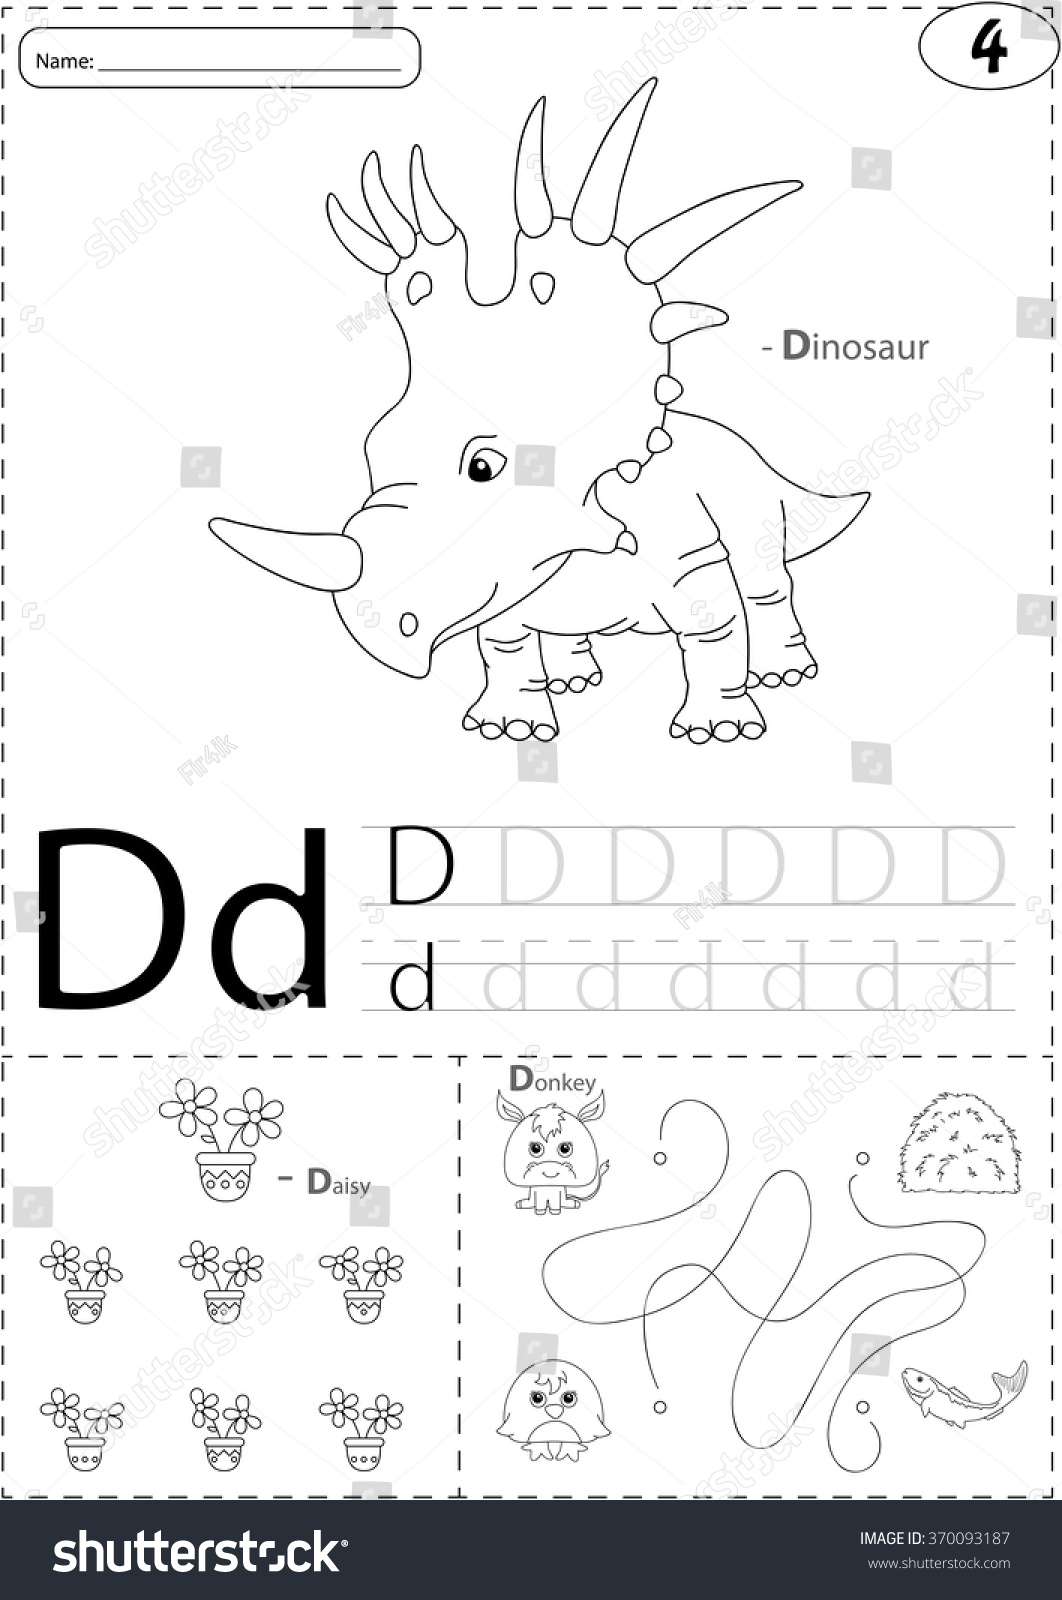 Cartoon Dinosaur Daisy Donkey Alphabet Tracing Stock